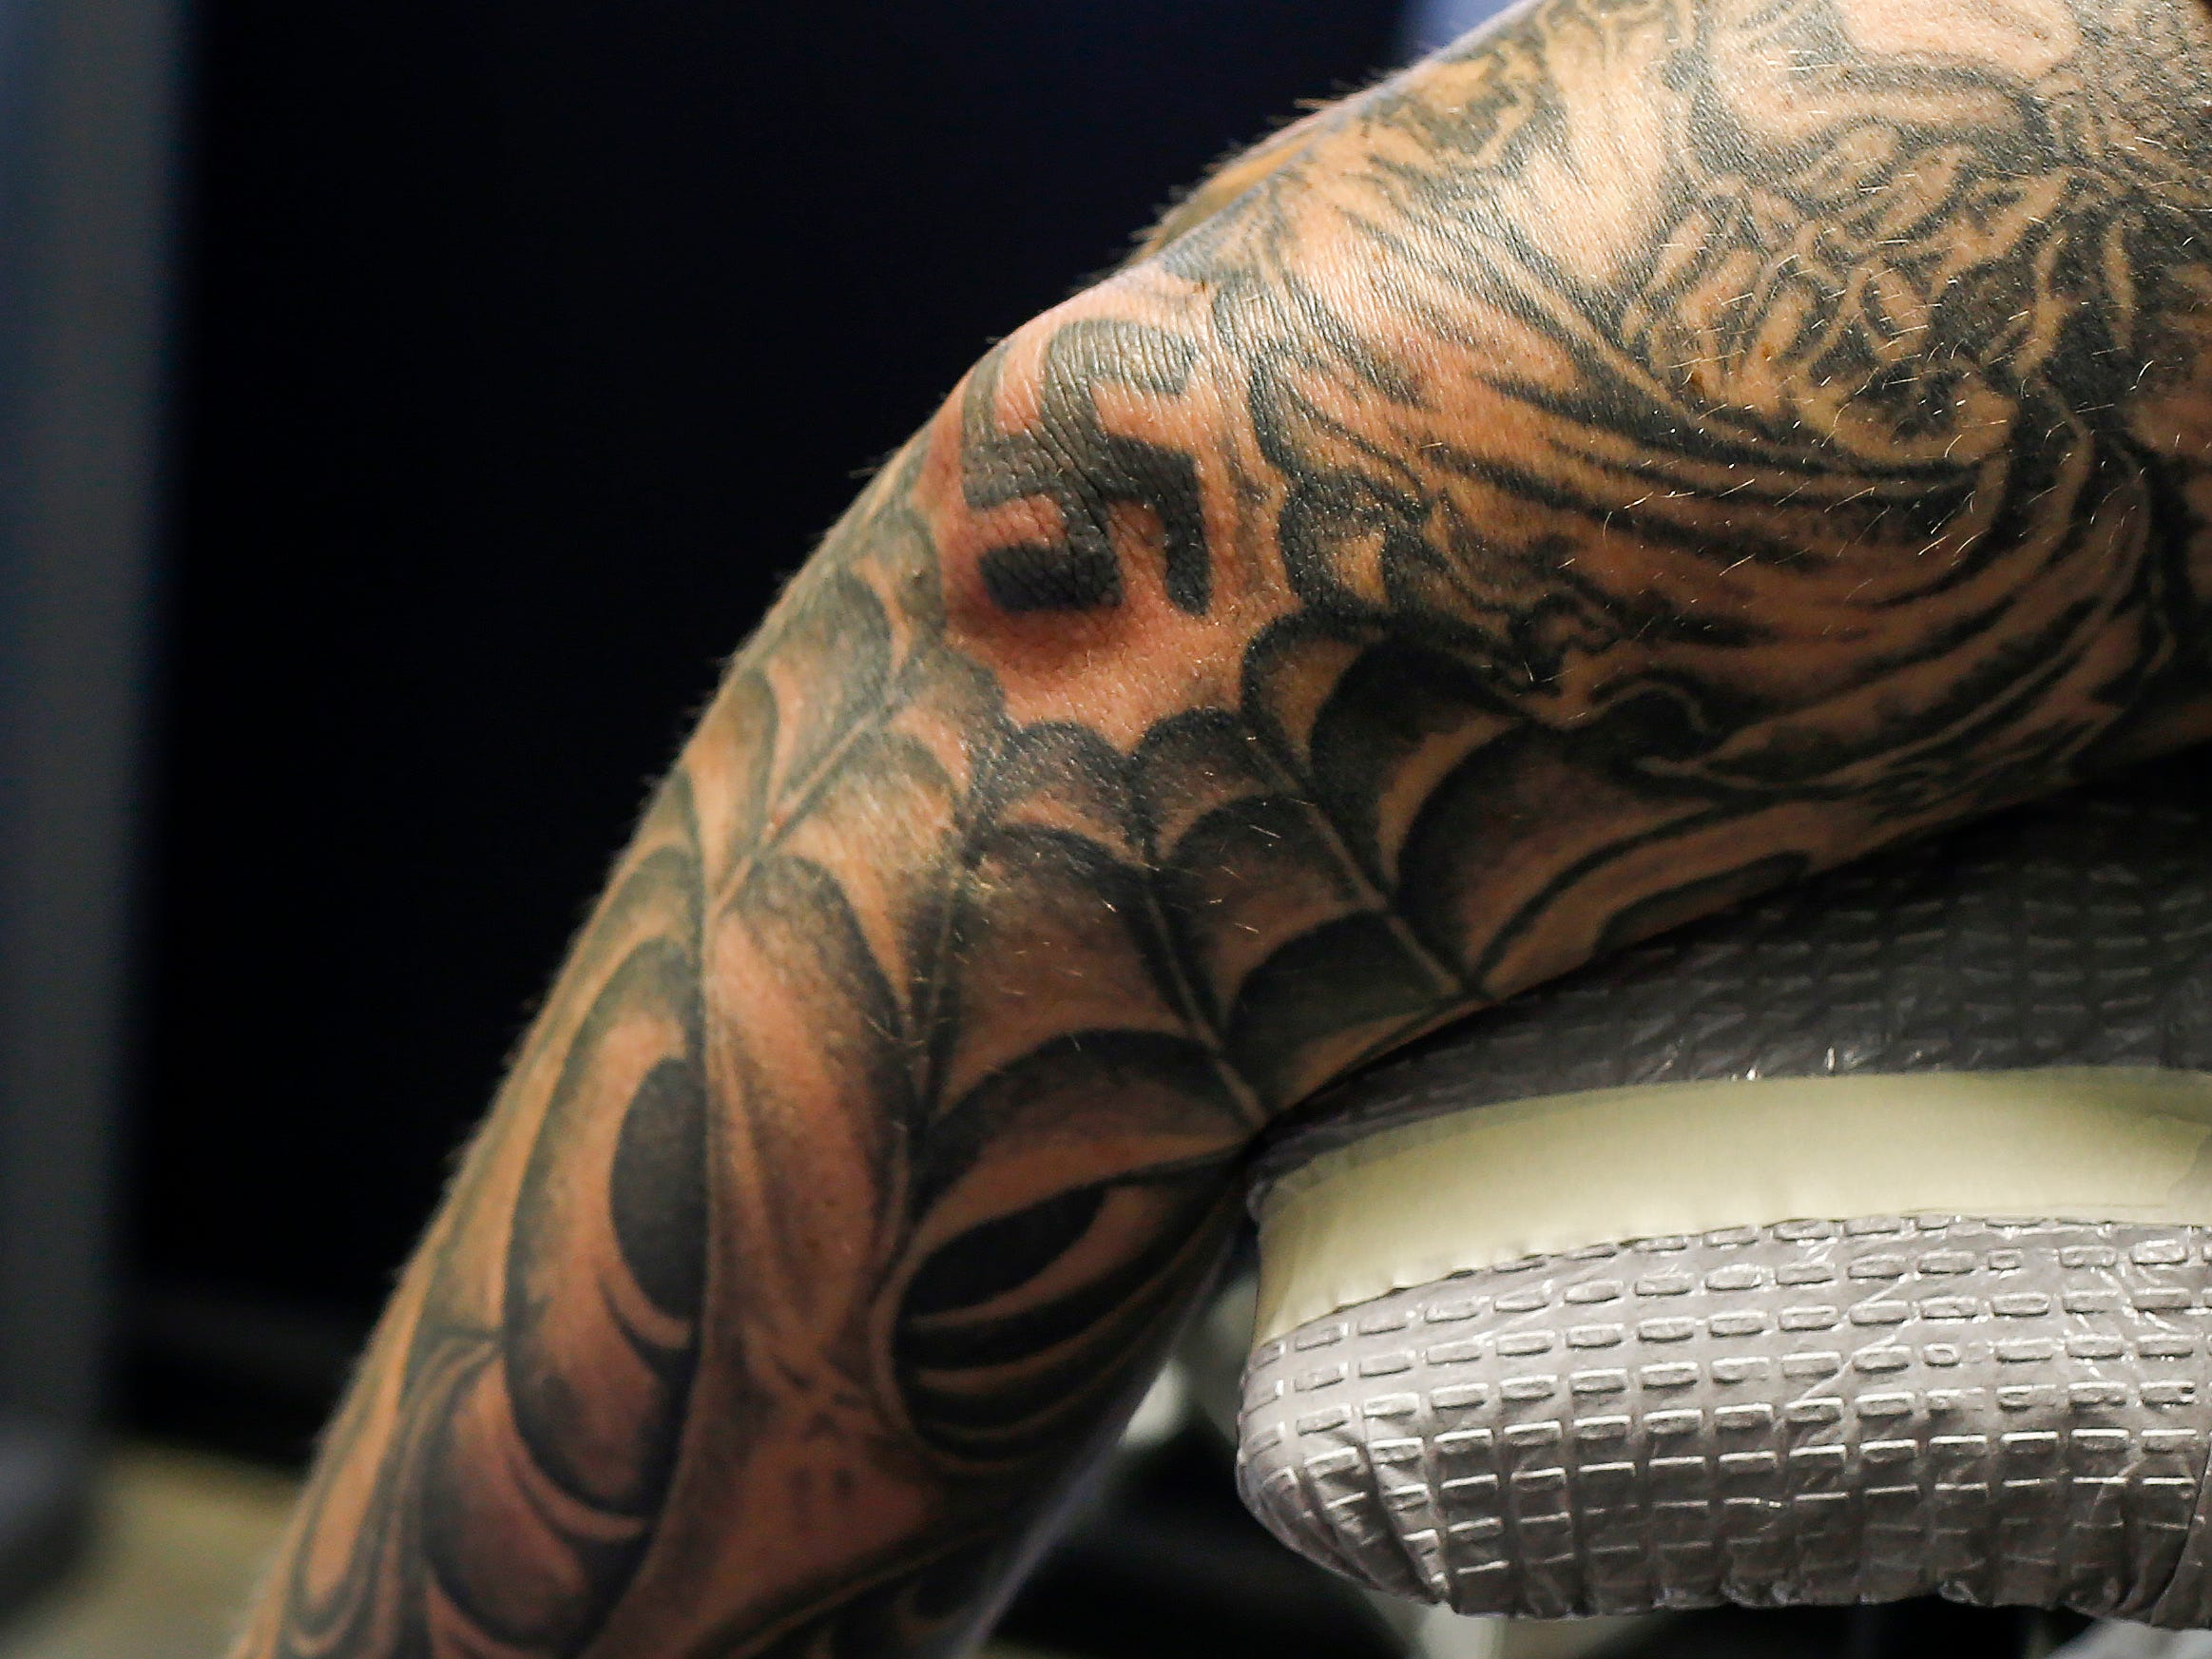 A man who wished not to be identified gets ready to have the swastika tattoo on his arm covered by Justin Fleetwood at Queen City Tattoo Company on Tuesday, Aug. 21, 2018. Fleetwood is offering to cover up people's hate-tattoos at no cost.